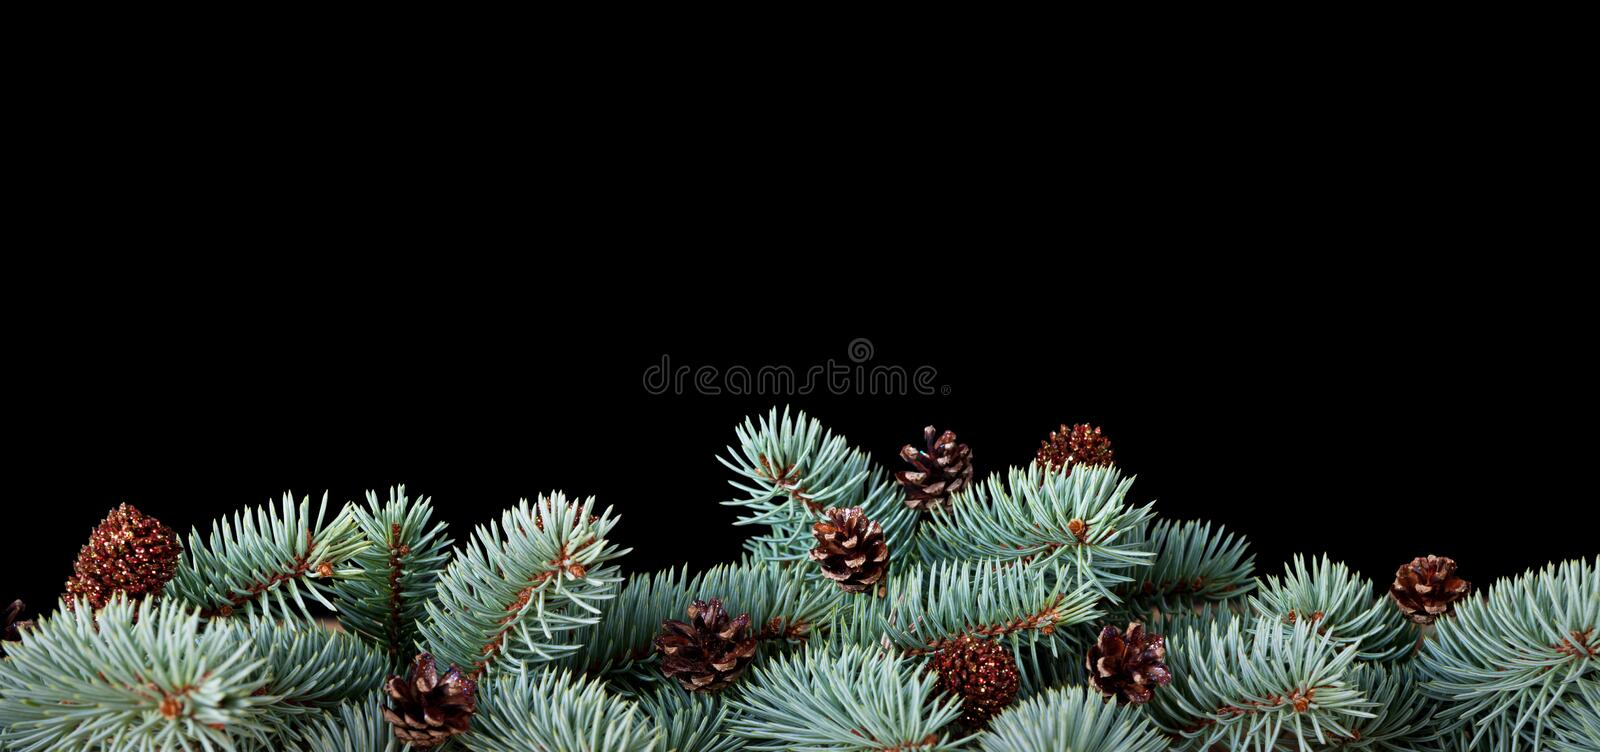 Christmas Background. Branches of pine wood with cones isolated on black background stock photo